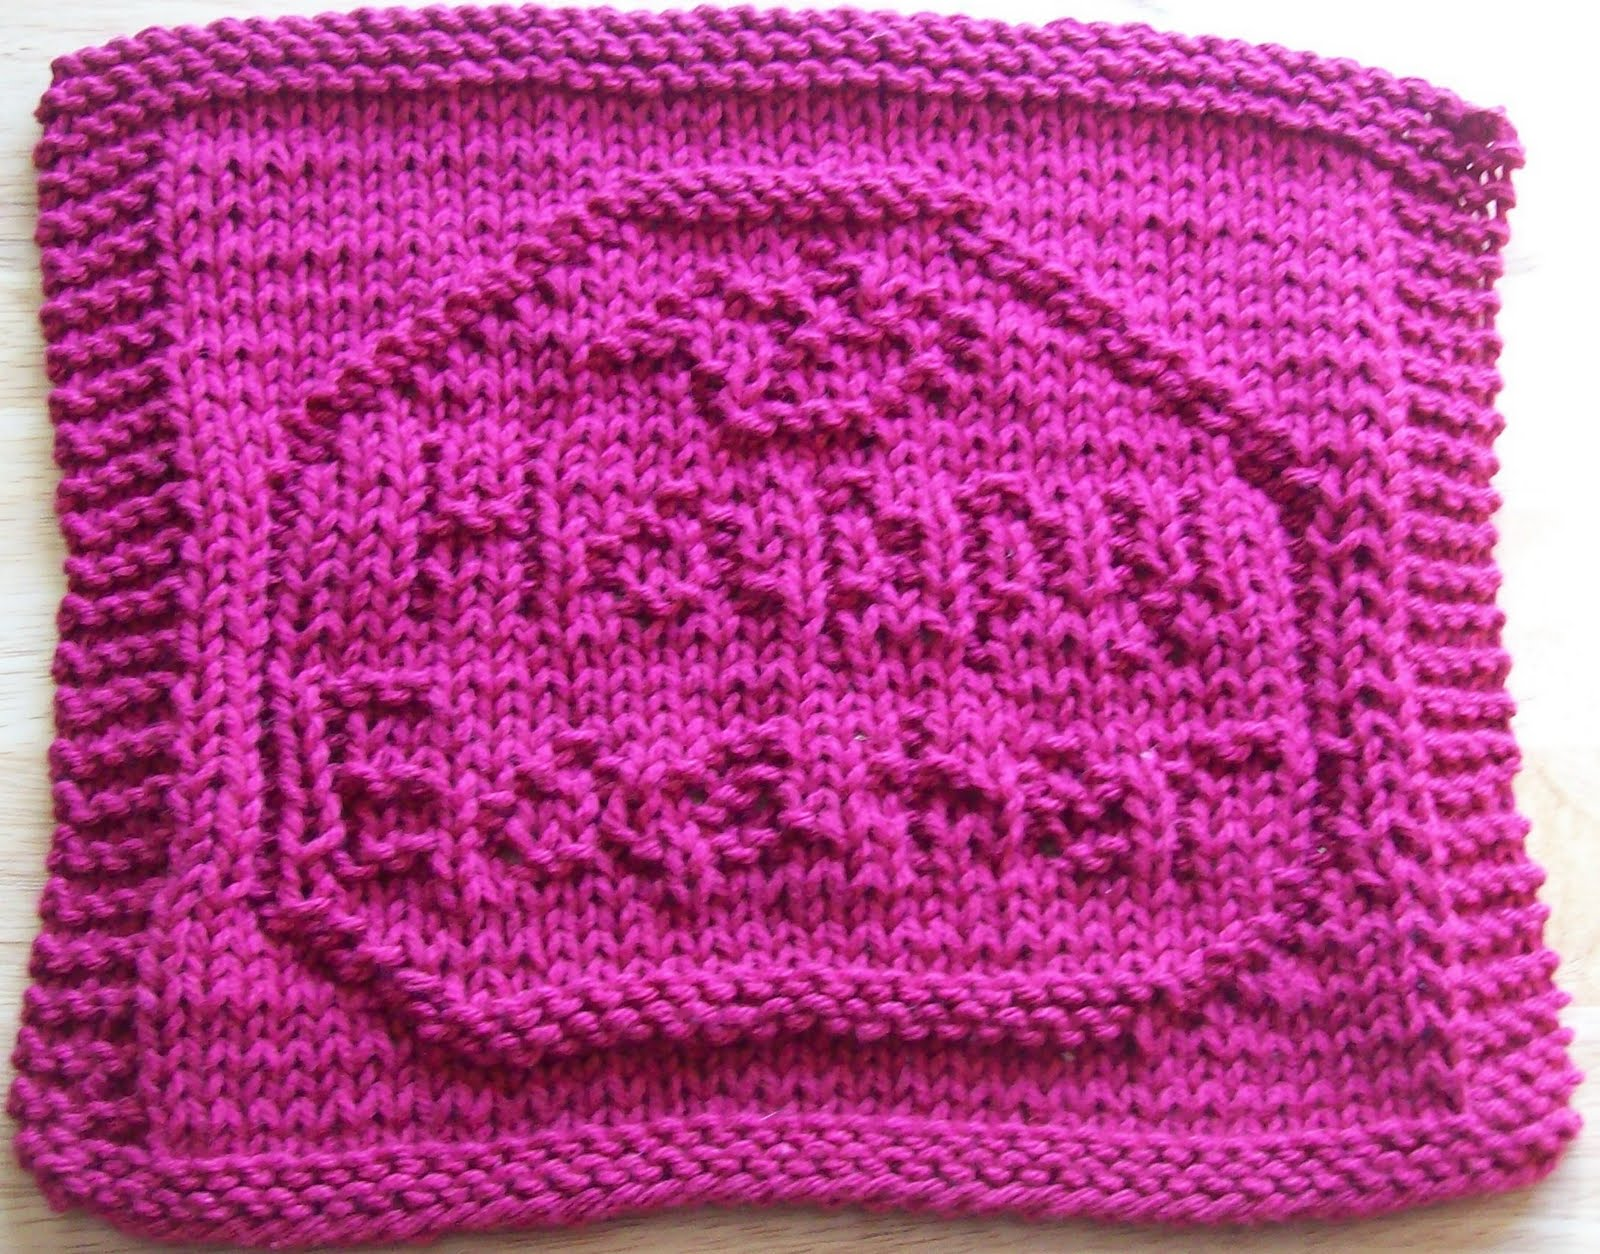 Knitted Dishcloth Patterns For Easter : DigKnitty Designs: Happy Easter Egg Knit Dishcloth Pattern